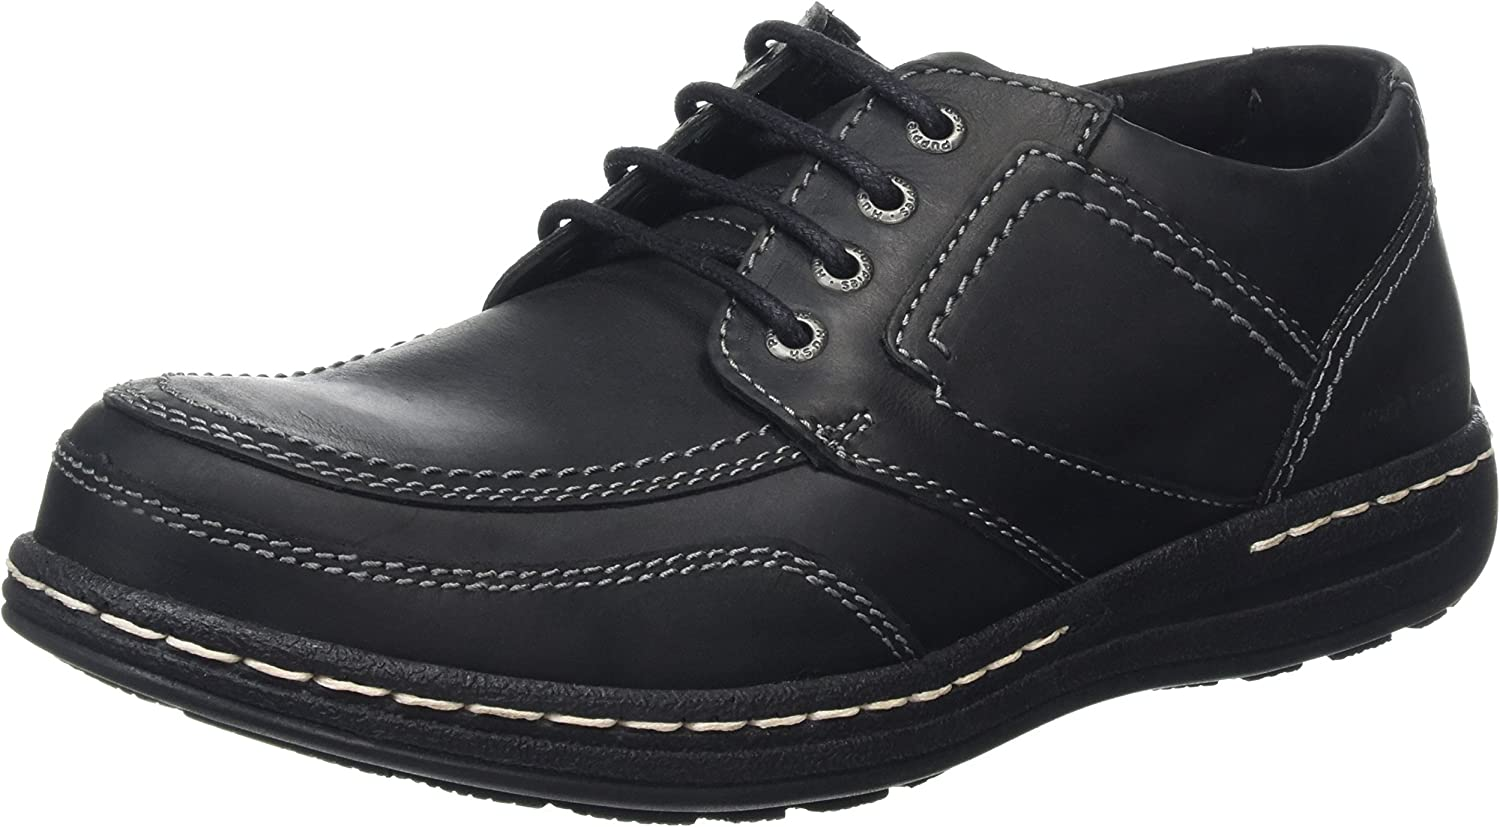 Hush Puppies Mens Volley Victory Lace Up shoes Black Size UK 7 EU 41